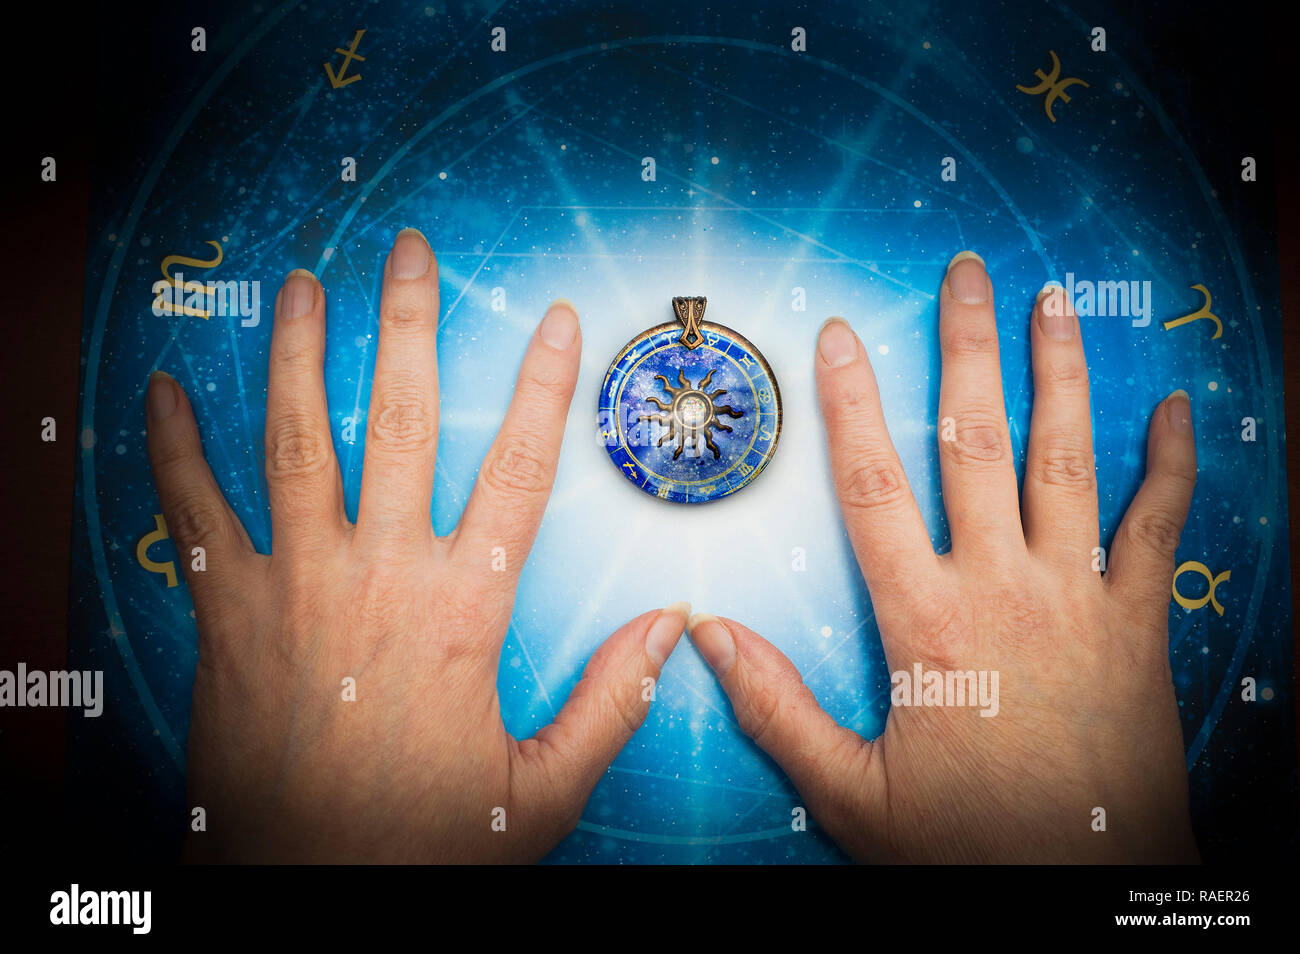 hands of an astrologer, fortune telling according to the stars concept - Stock Image